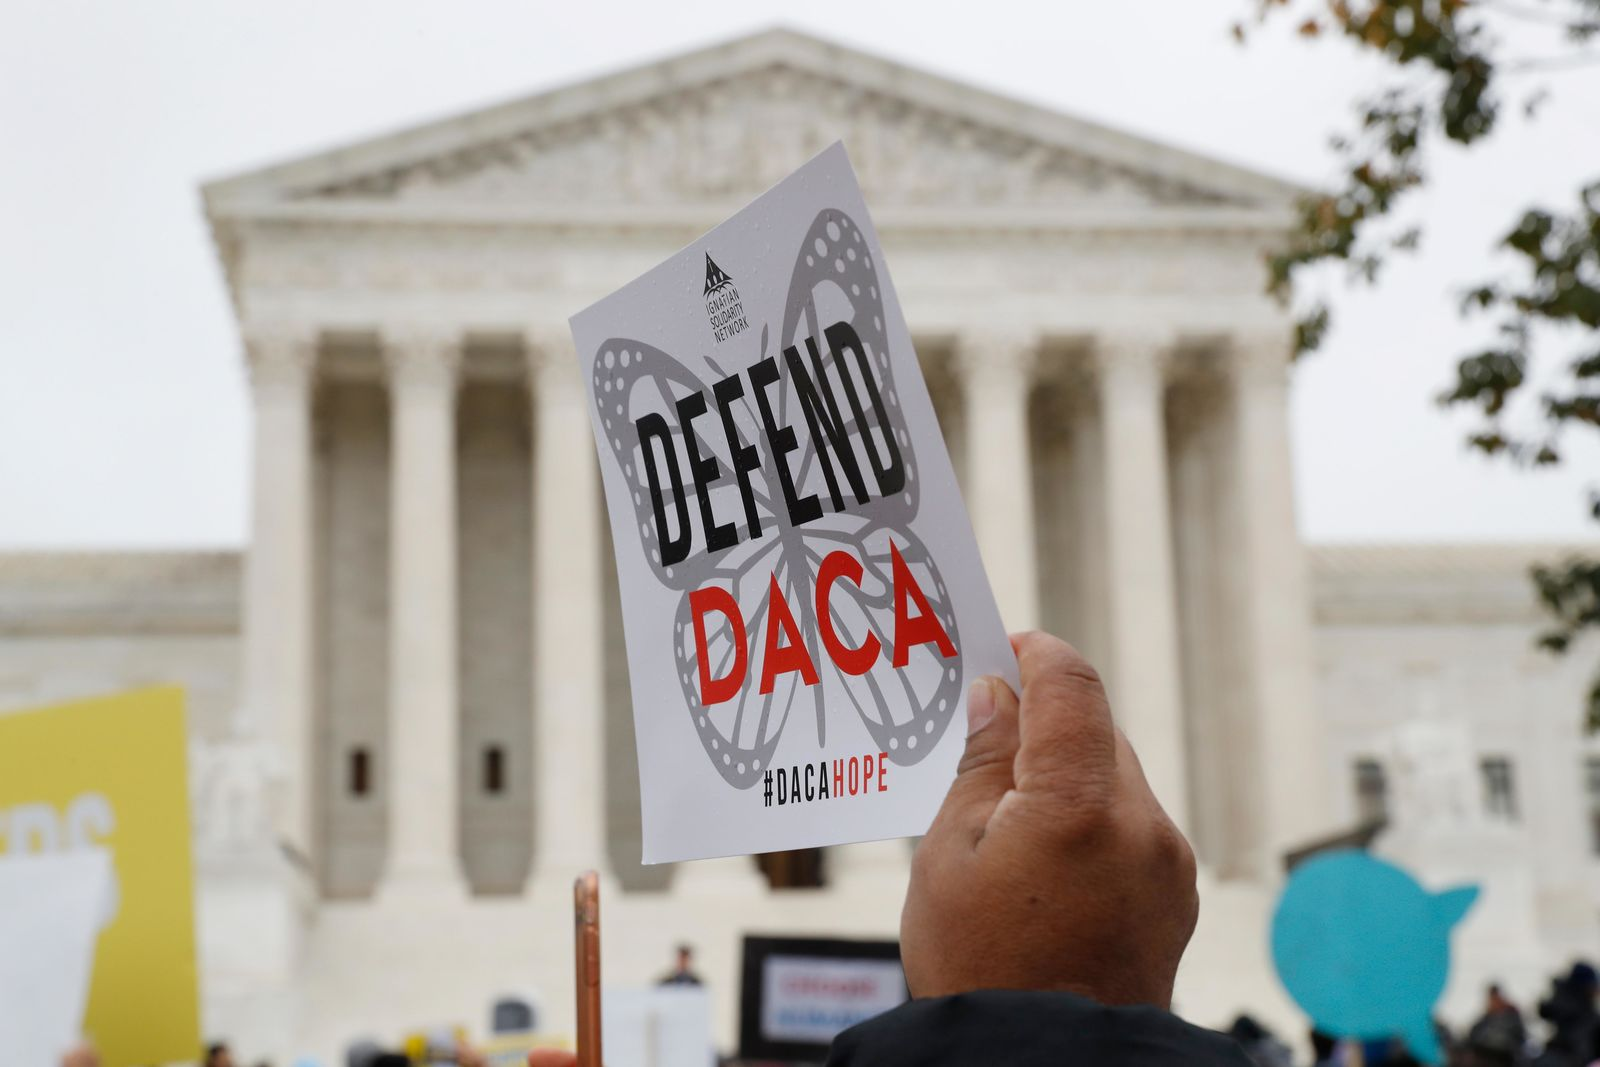 FILE - In this Nov. 12, 2019, file photo people rally outside the Supreme Court as oral arguments are heard in the case of President Trump's decision to end the Obama-era, Deferred Action for Childhood Arrivals program (DACA), at the Supreme Court in Washington. DACA recipients are assuming a prominent role in the presidential campaign, working to get others to vote, even though they cannot cast ballots themselves, and becoming leaders in the Democratic campaigns of Bernie Sanders and Tom Steyer as well as get-out-the-vote organizations. (AP Photo/Jacquelyn Martin, File)